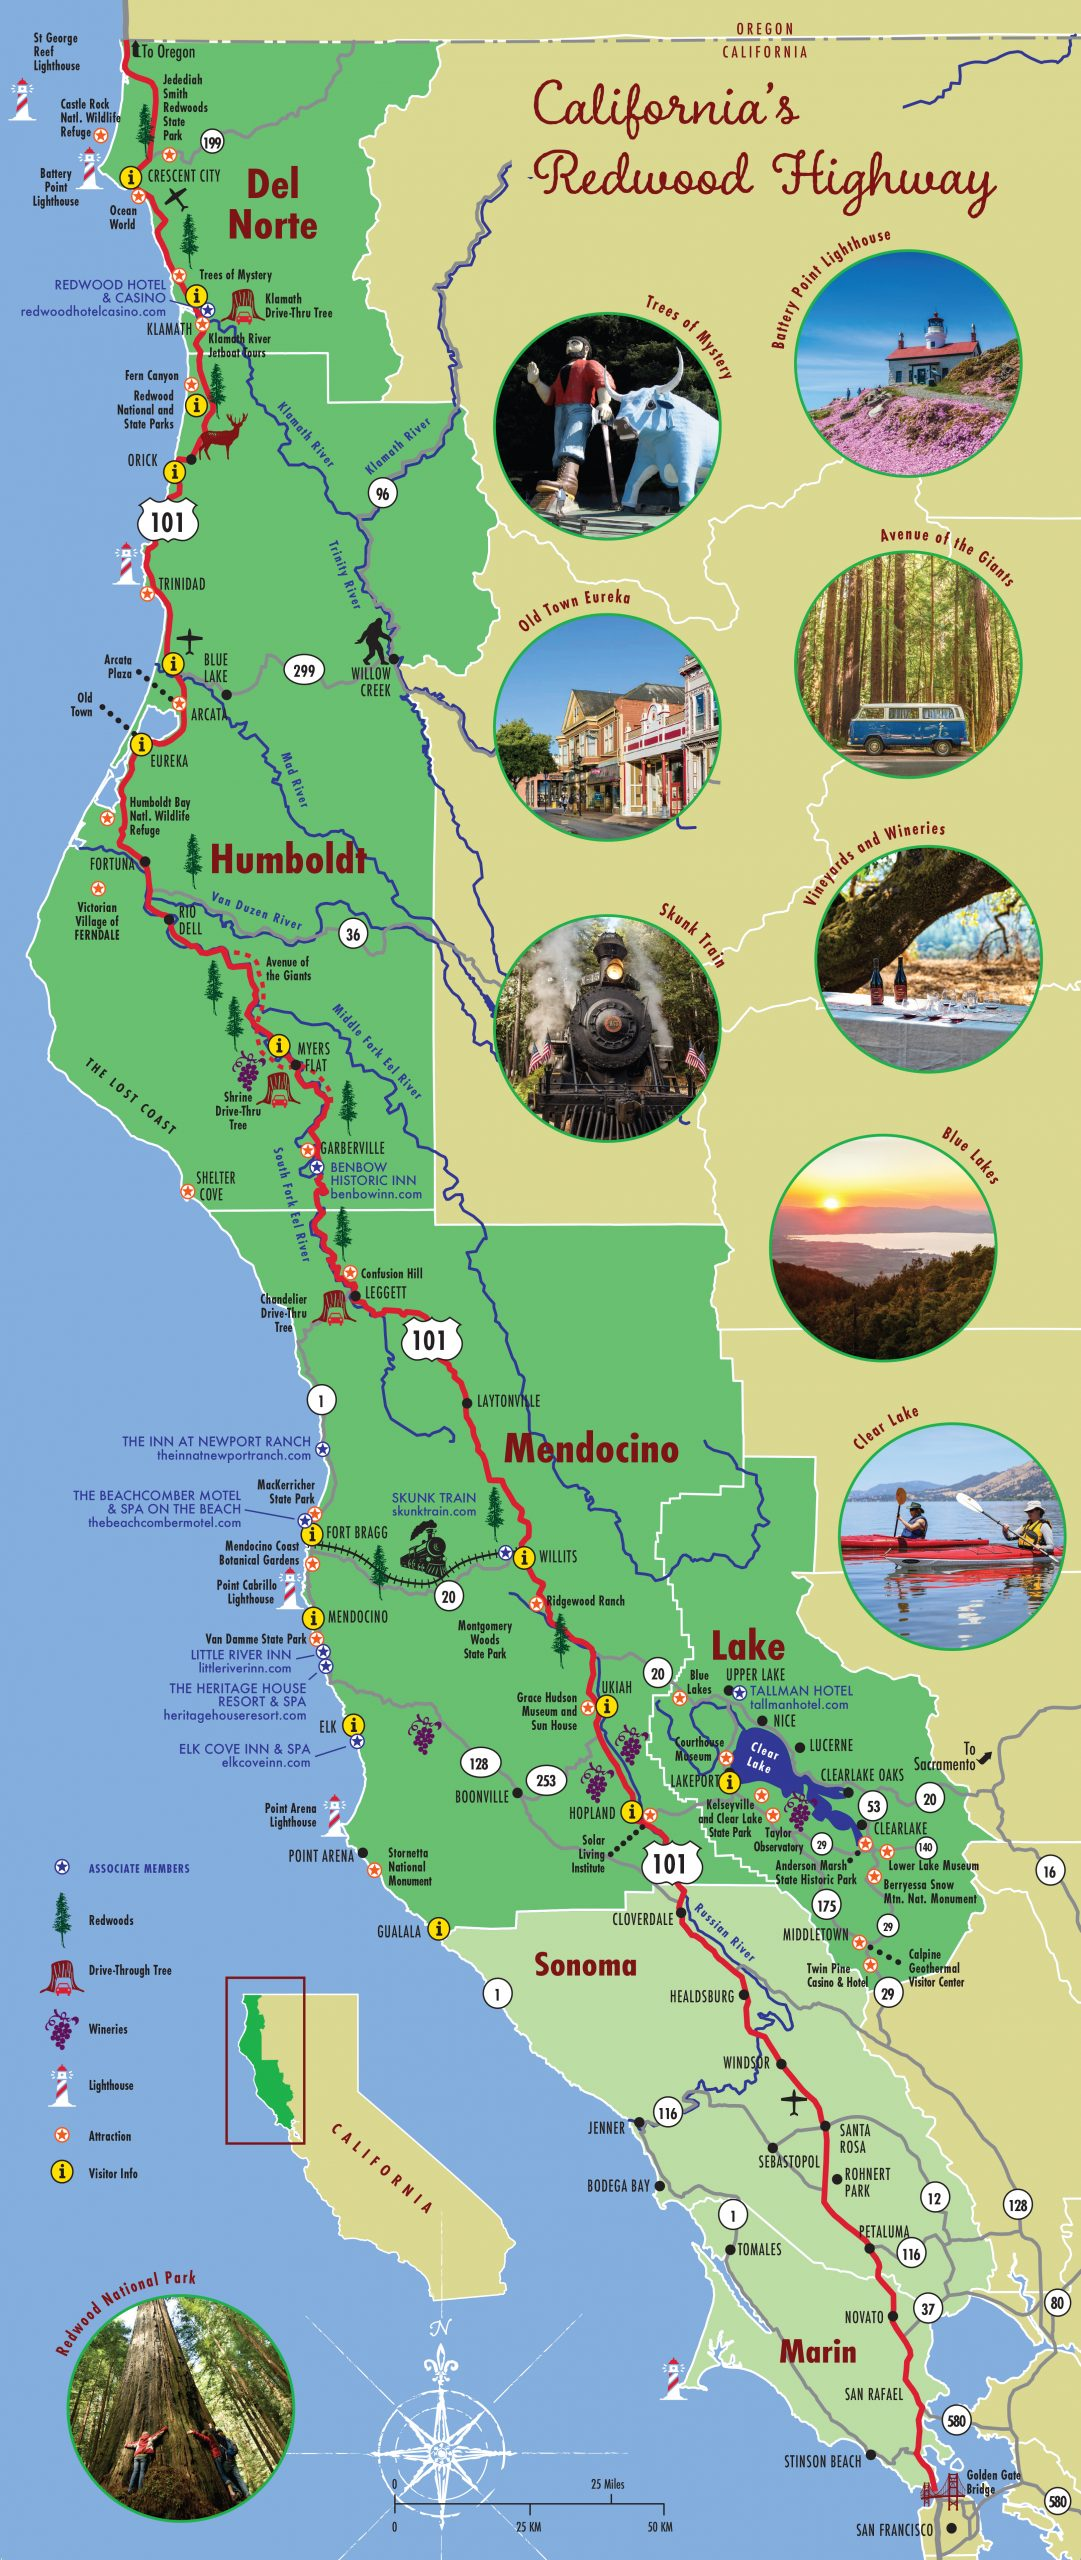 Northern California Map of the North Coast